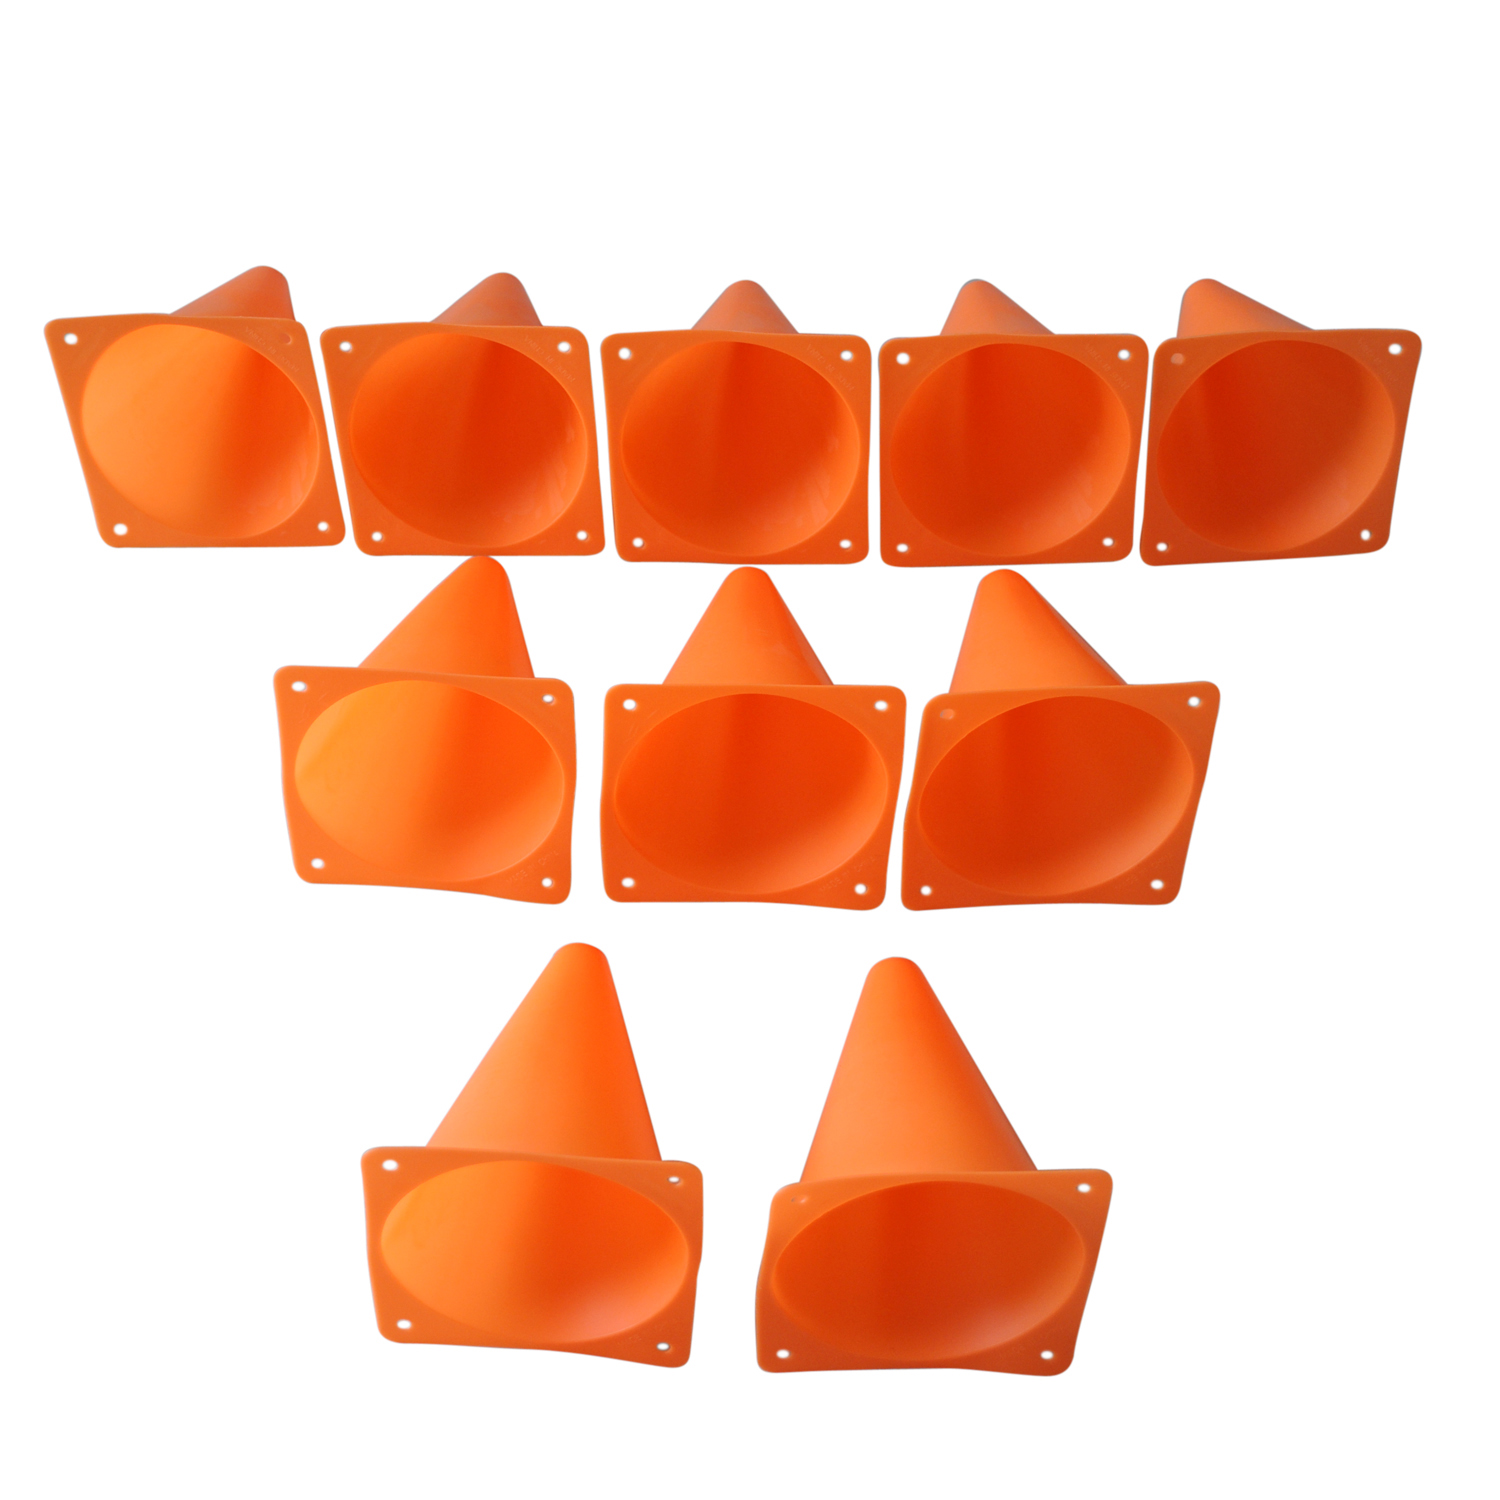 SZ-LGFM-7 Marqueur Cônes Cours/de Football et De Soccer Cônes (10 pcs/ensemble) Orange